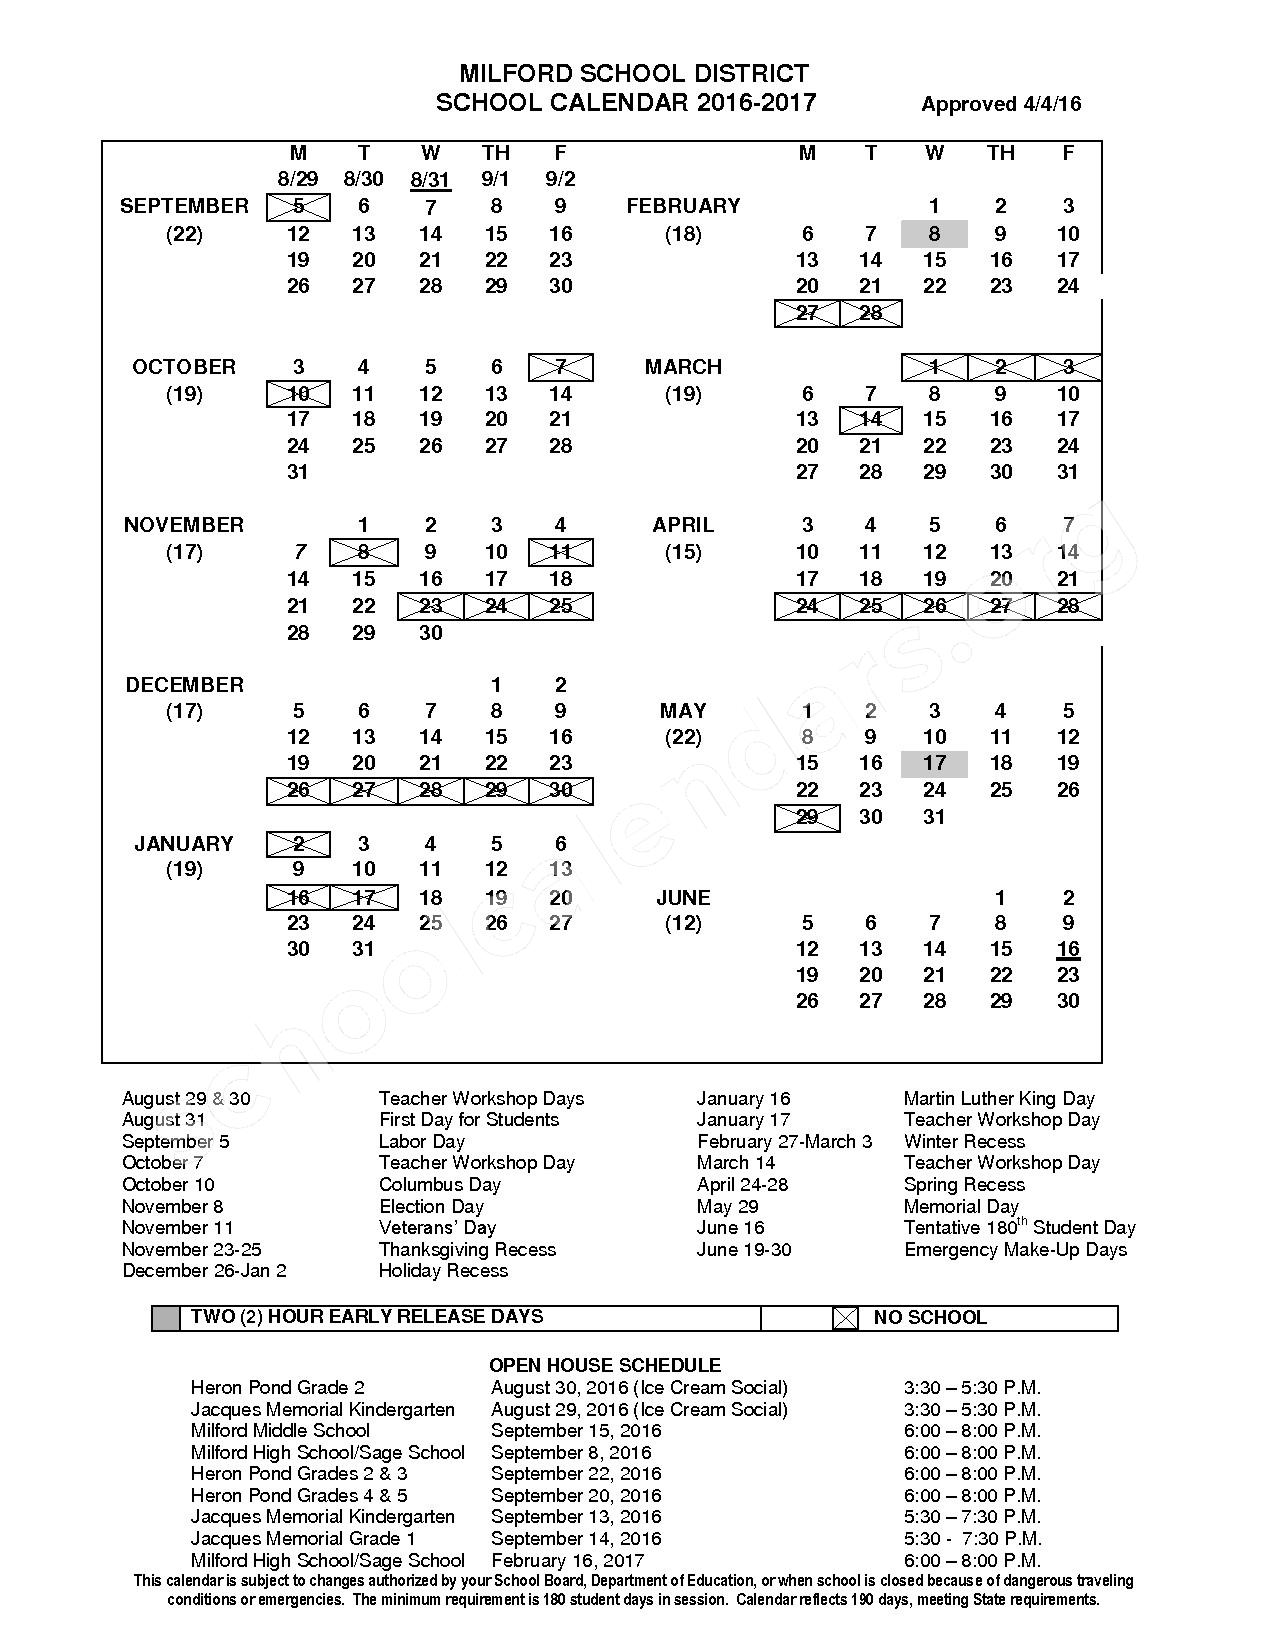 2016 - 2017 School Calendar – SAU 40 - Milford School District – page 1